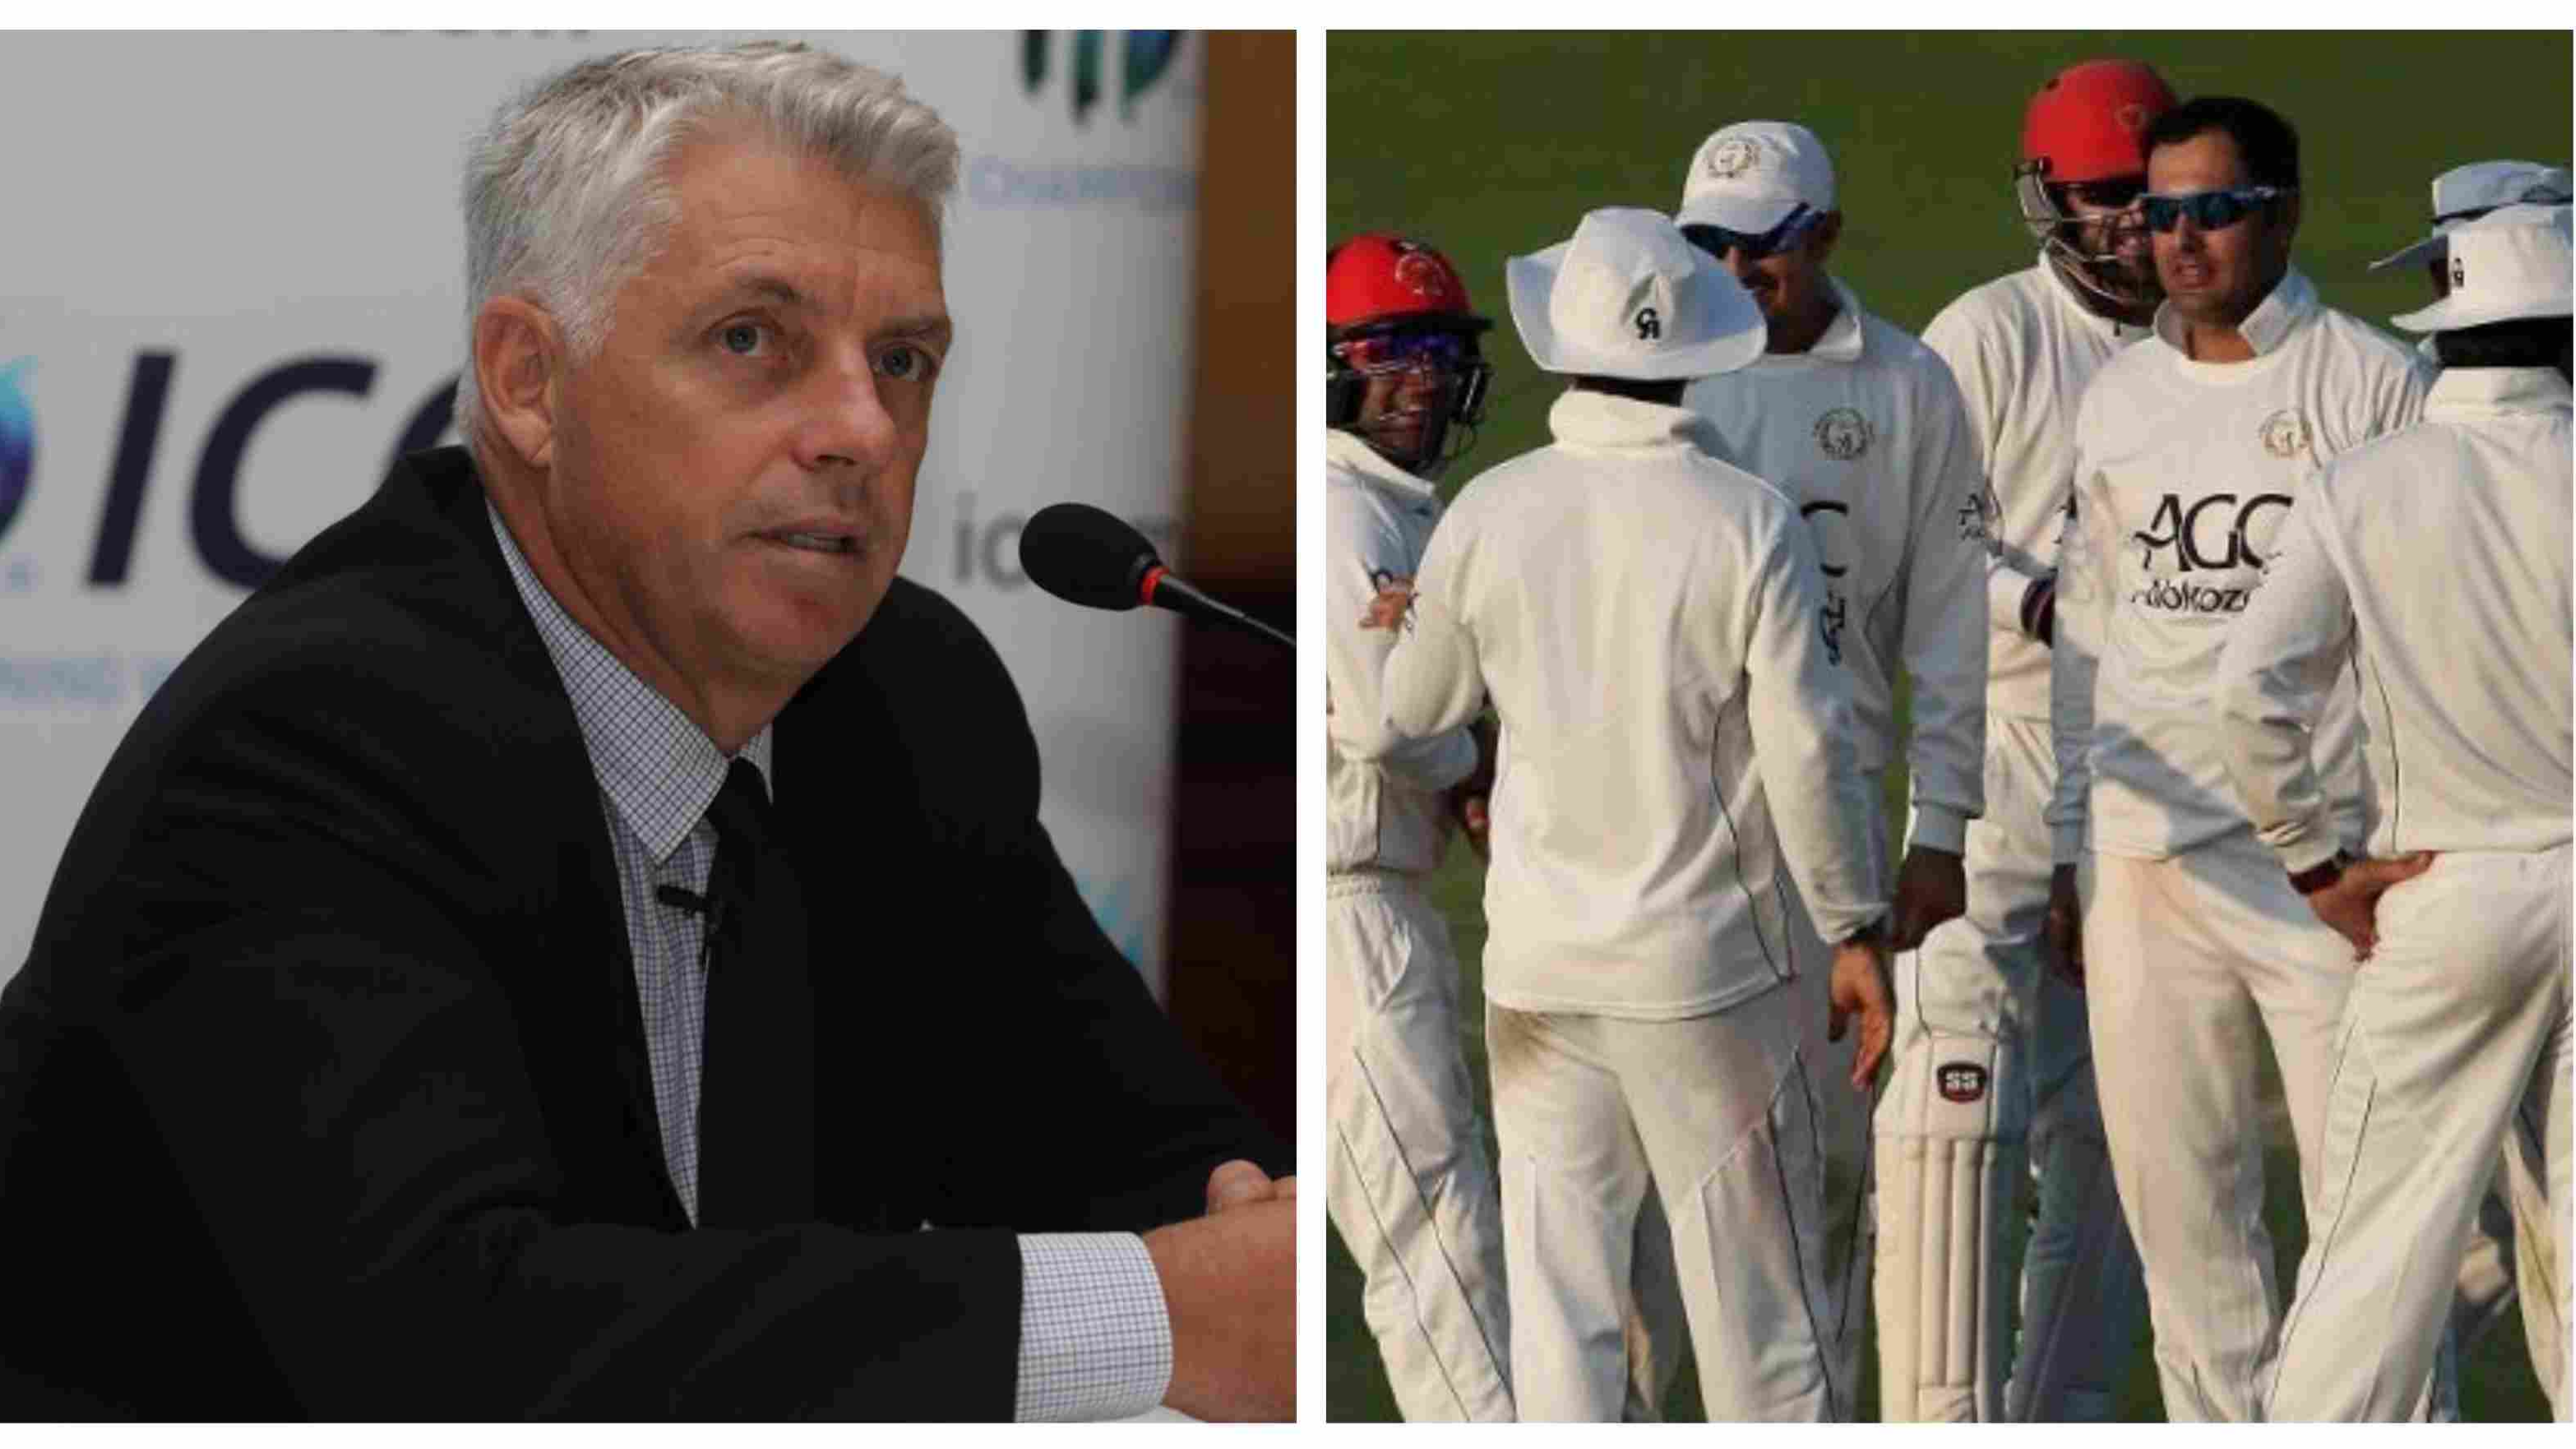 IND vs AFG 2018: ICC Chief Executive sends positive vibes for Test debutants Afghanistan